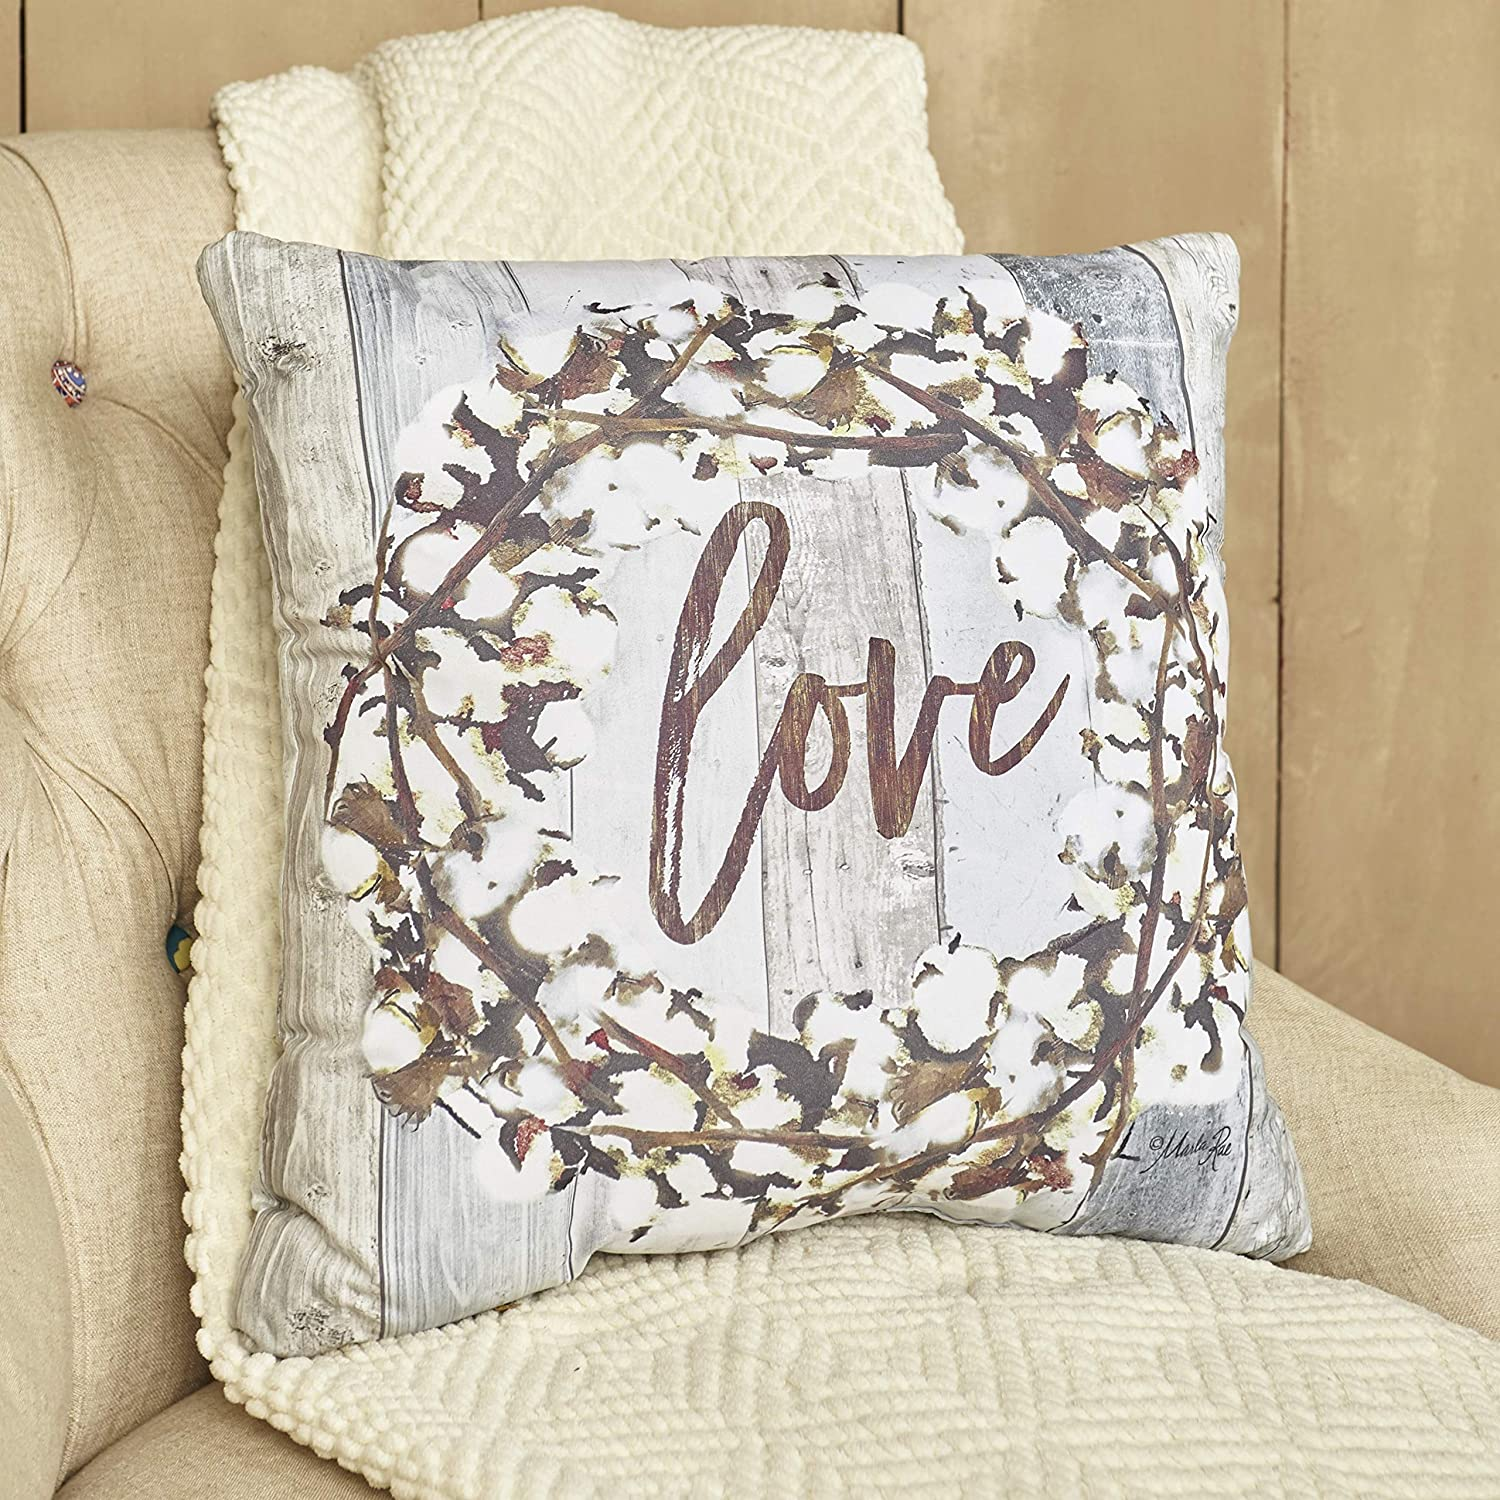 "The Lakeside Collection Cotton Boll Furniture Accent Pillow - Love - Farmhouse 17"" Throw Cushion"